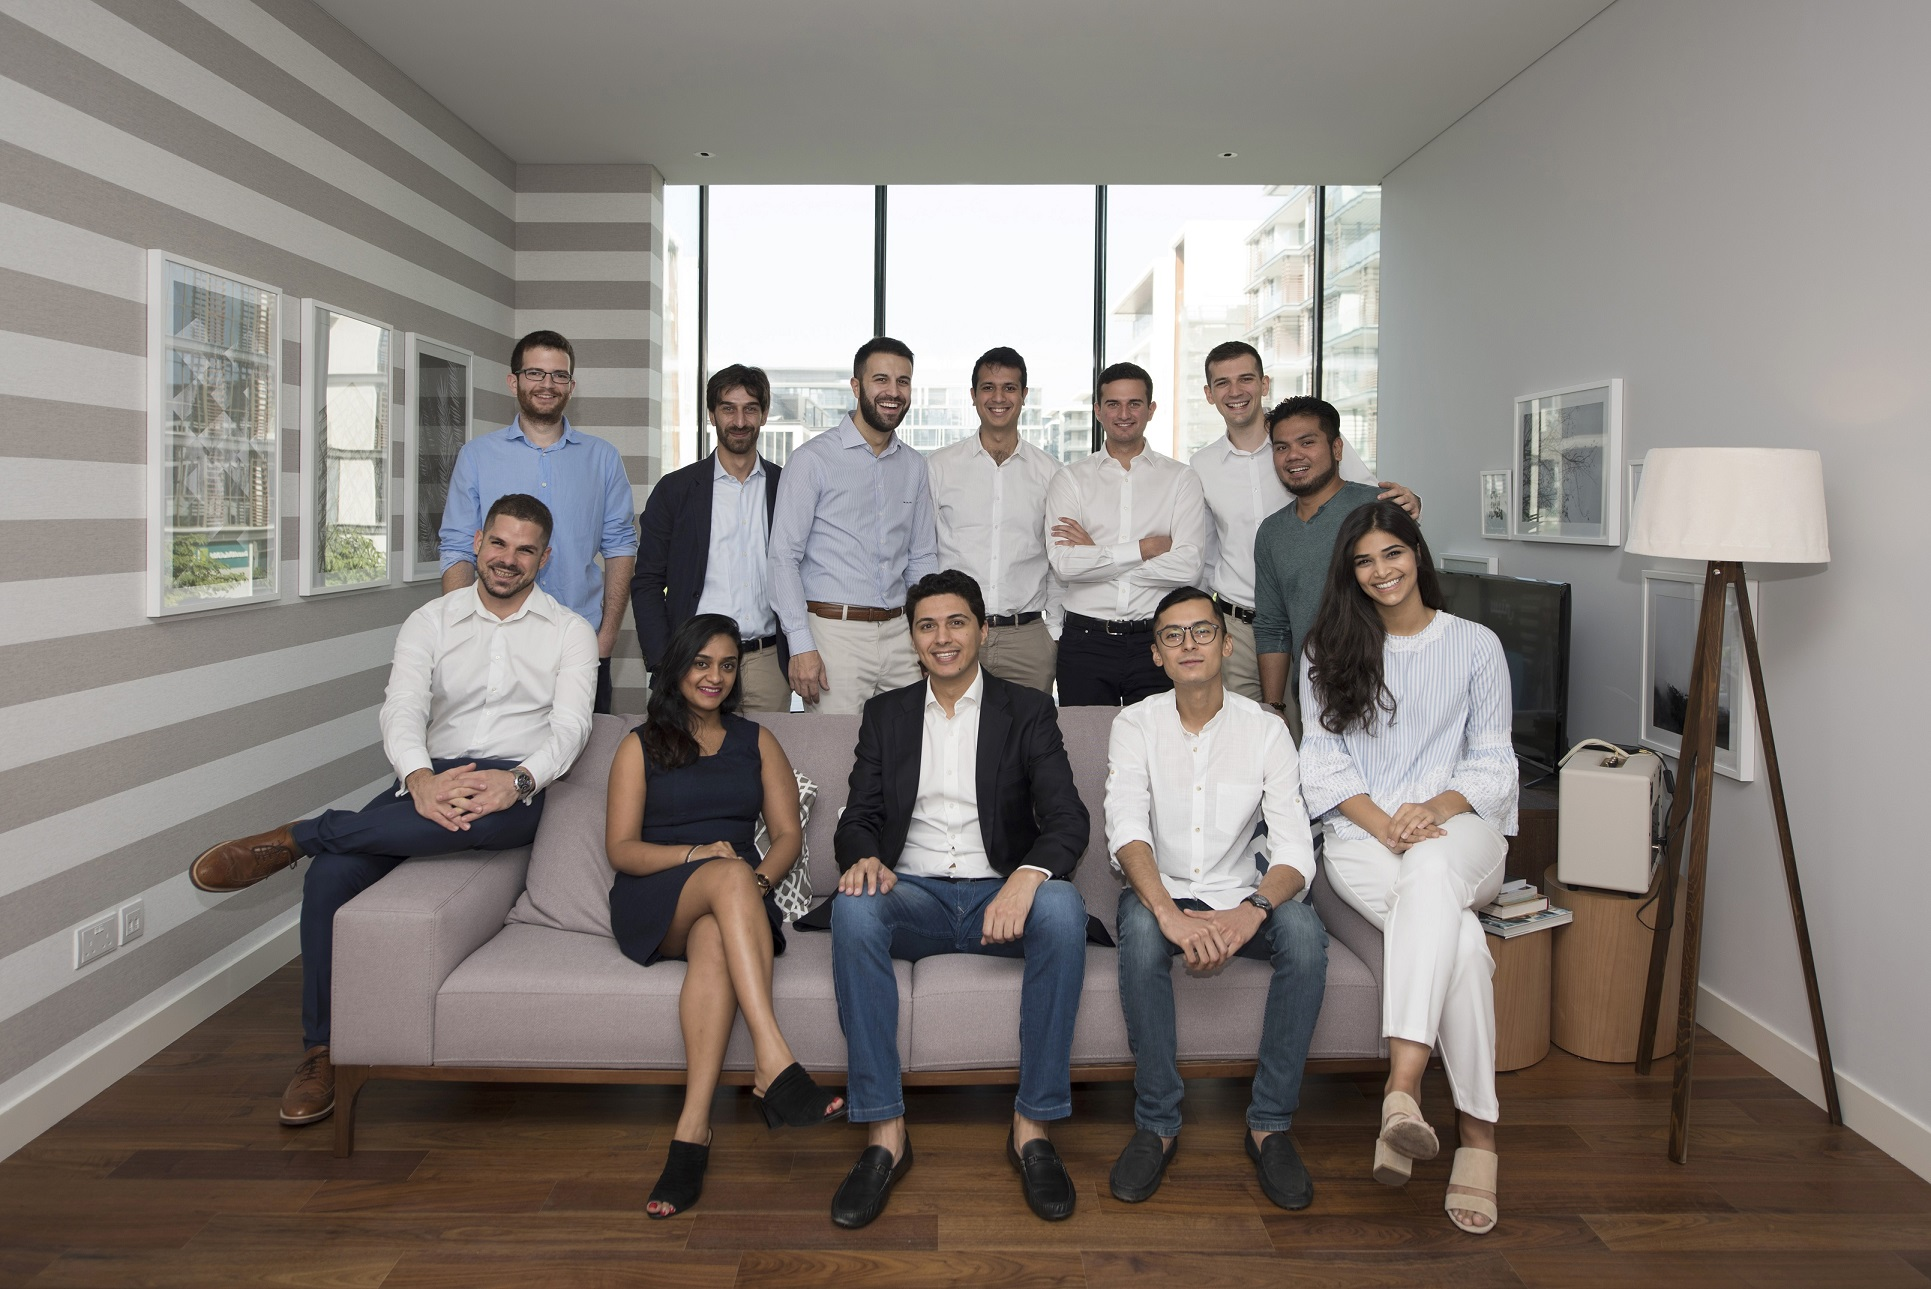 Hospitality-tech startup Blueground raises US$12m in funding from Jabbar Internet Group, Endeavor Catalyst and others